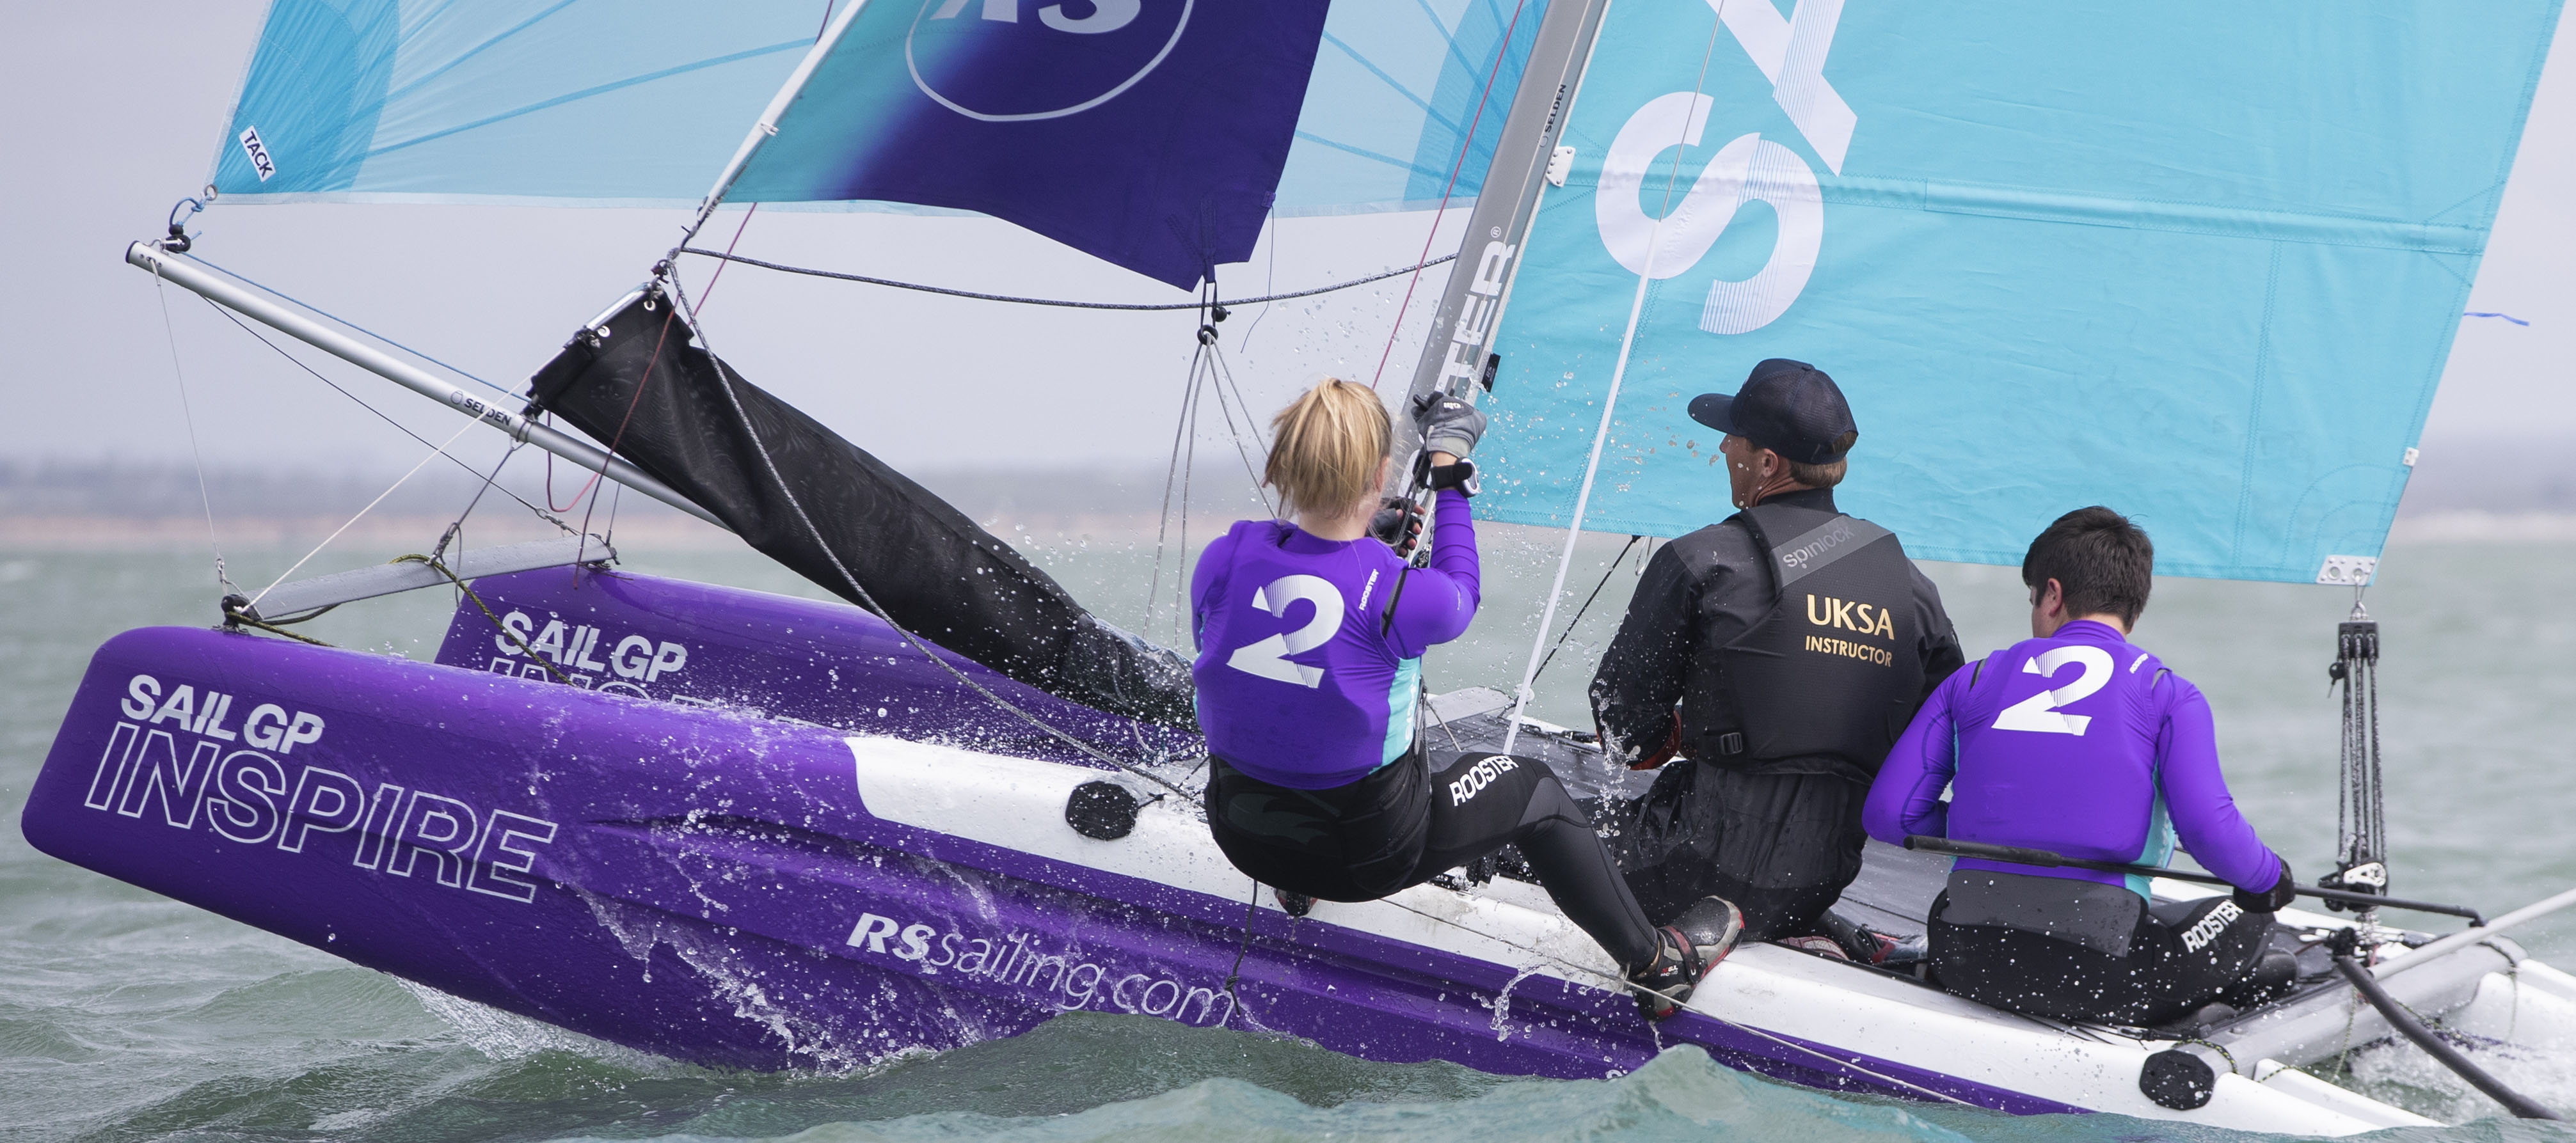 OFFICIAL PARTNER OF THE SAILGP INSPIRE PROGRAM